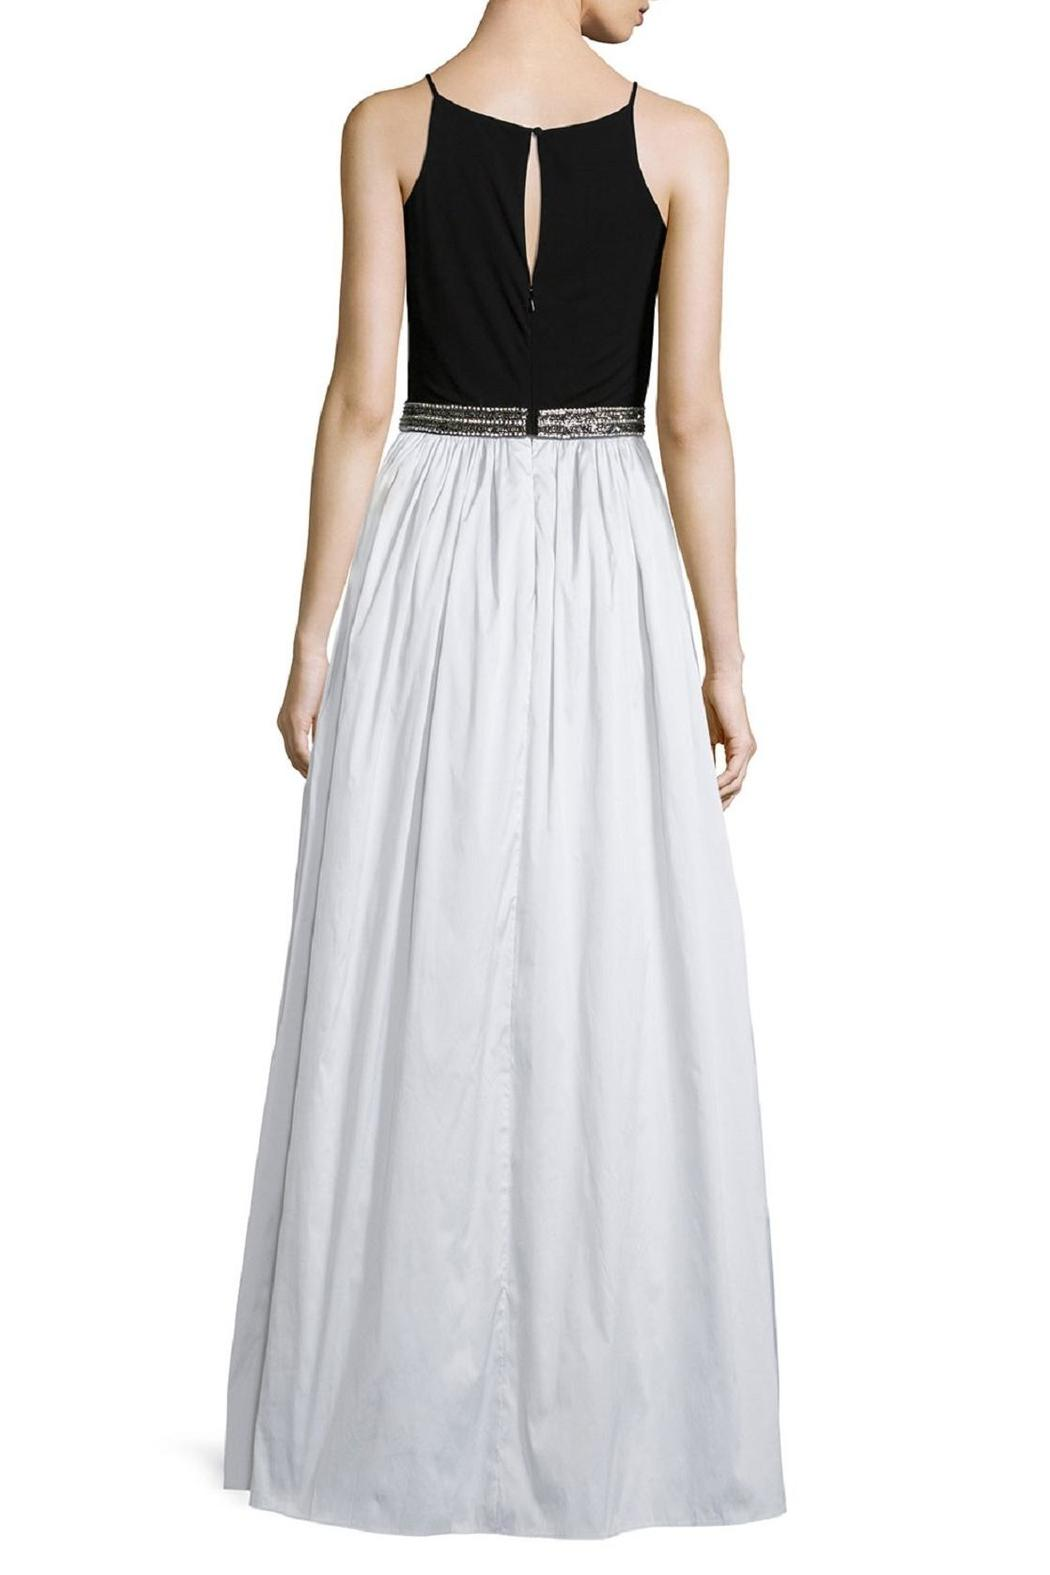 Aidan Mattox Beaded Waist Gown from New Jersey by District 5 ...